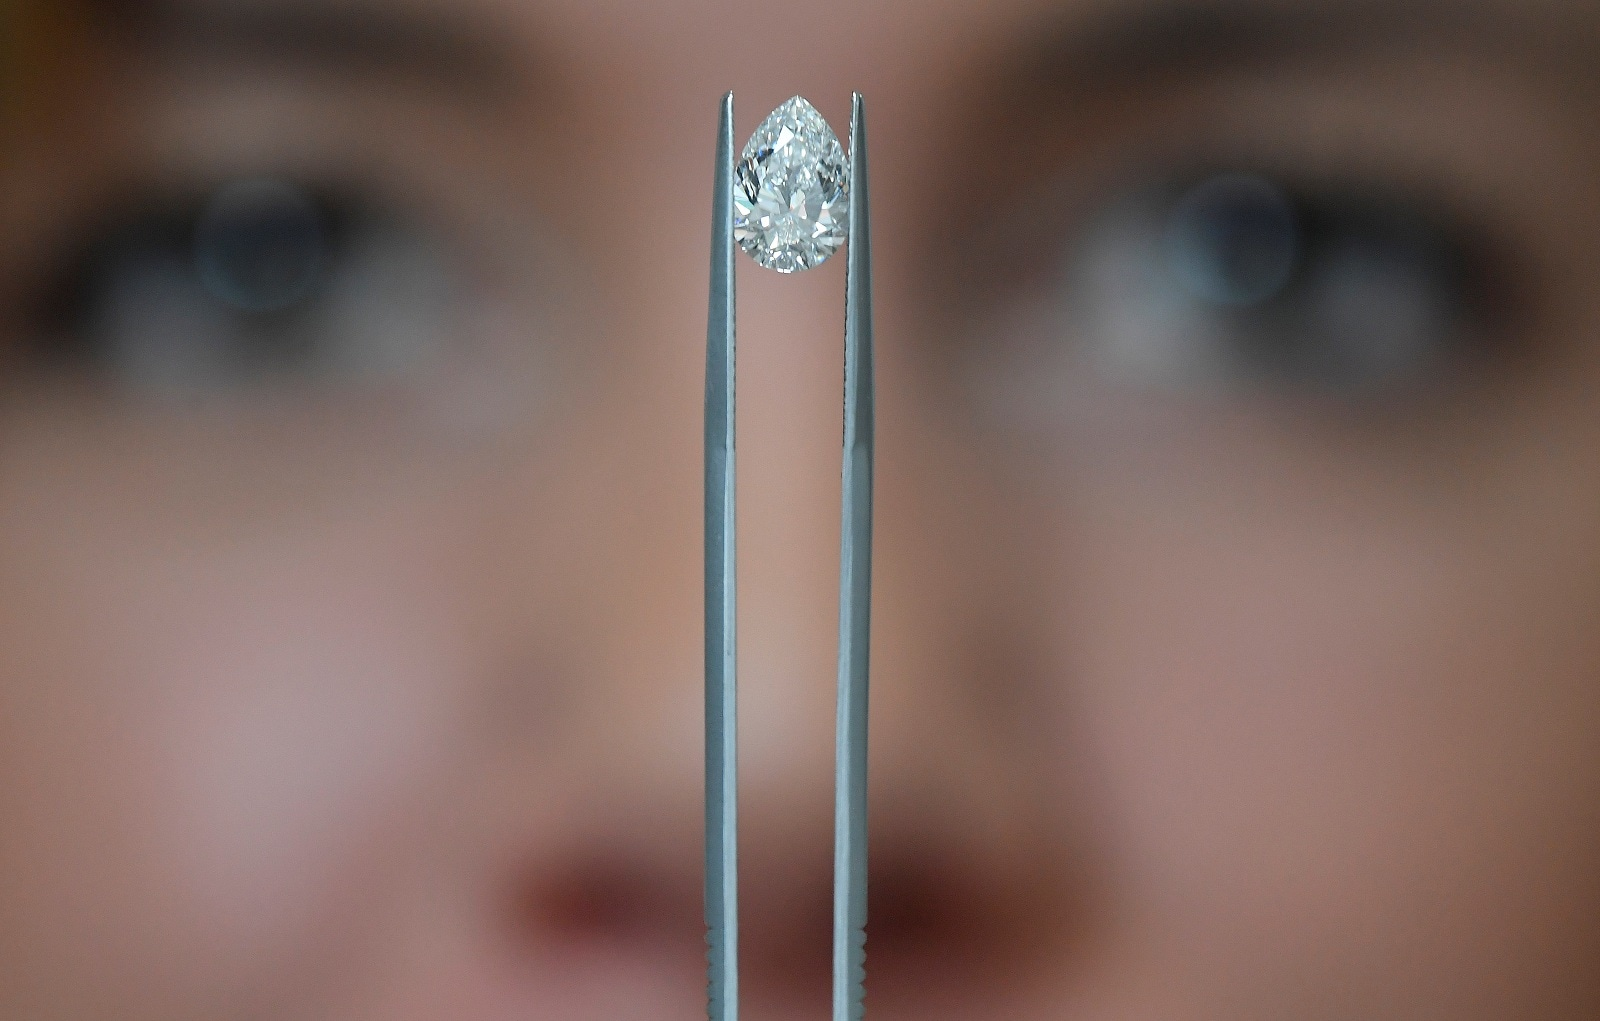 Sophie Lomax shows a pear shape diamond, June 26, 2019. REUTERS/Toby Melville